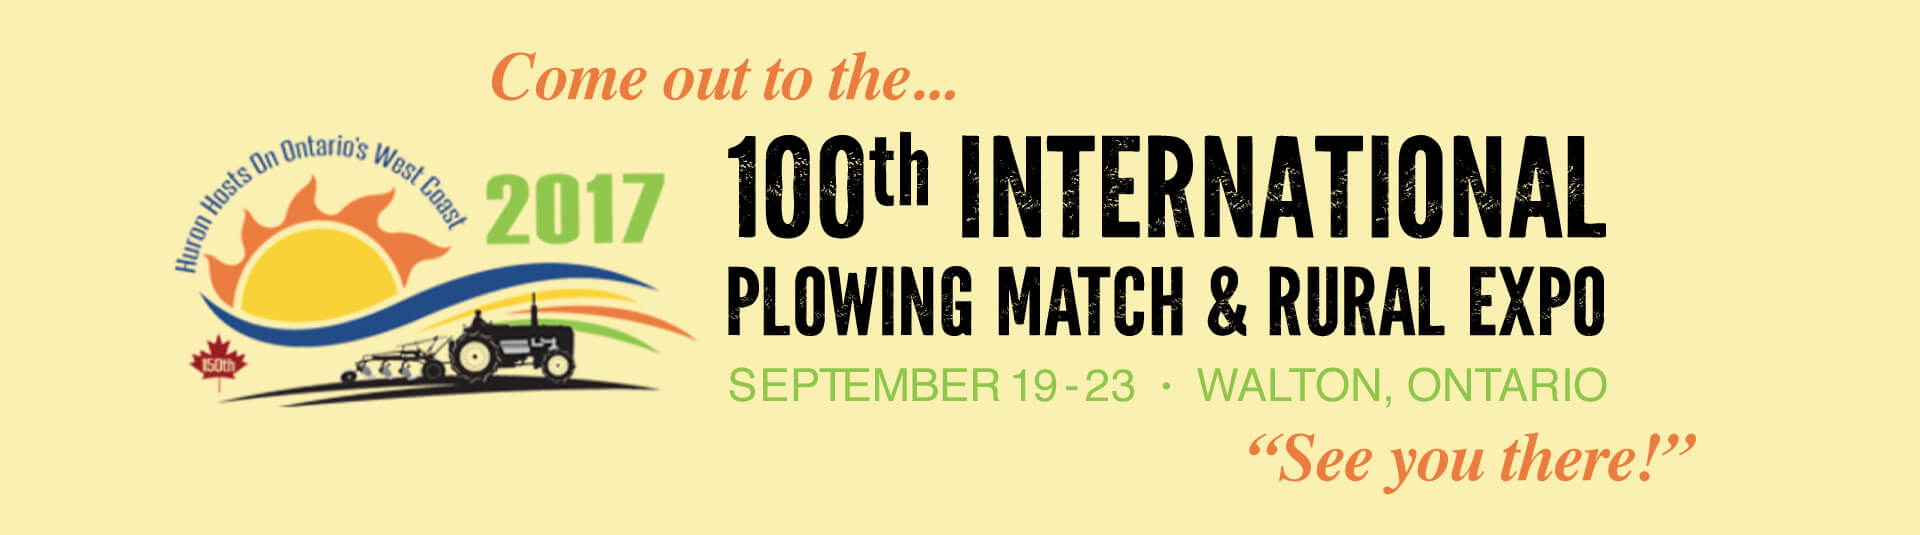 Plowing Match Event